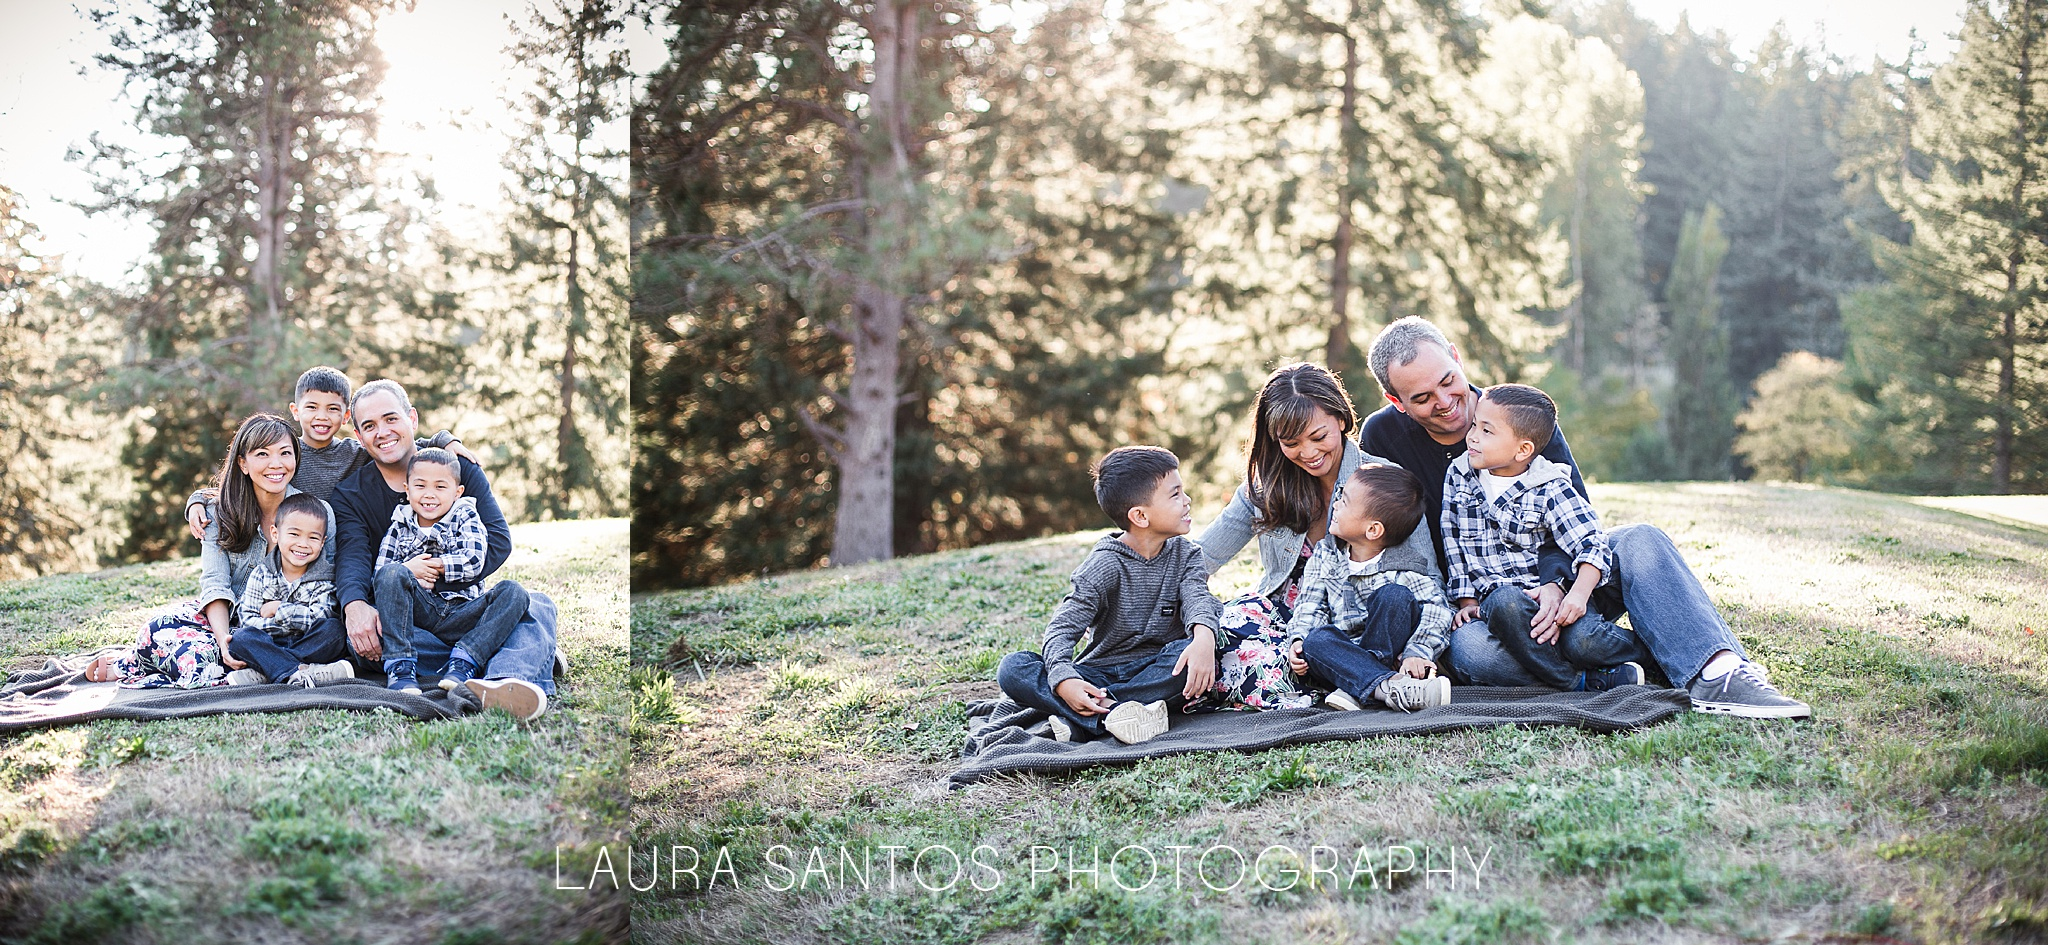 Laura Santos Photography Portland Oregon Family Photographer_0755.jpg